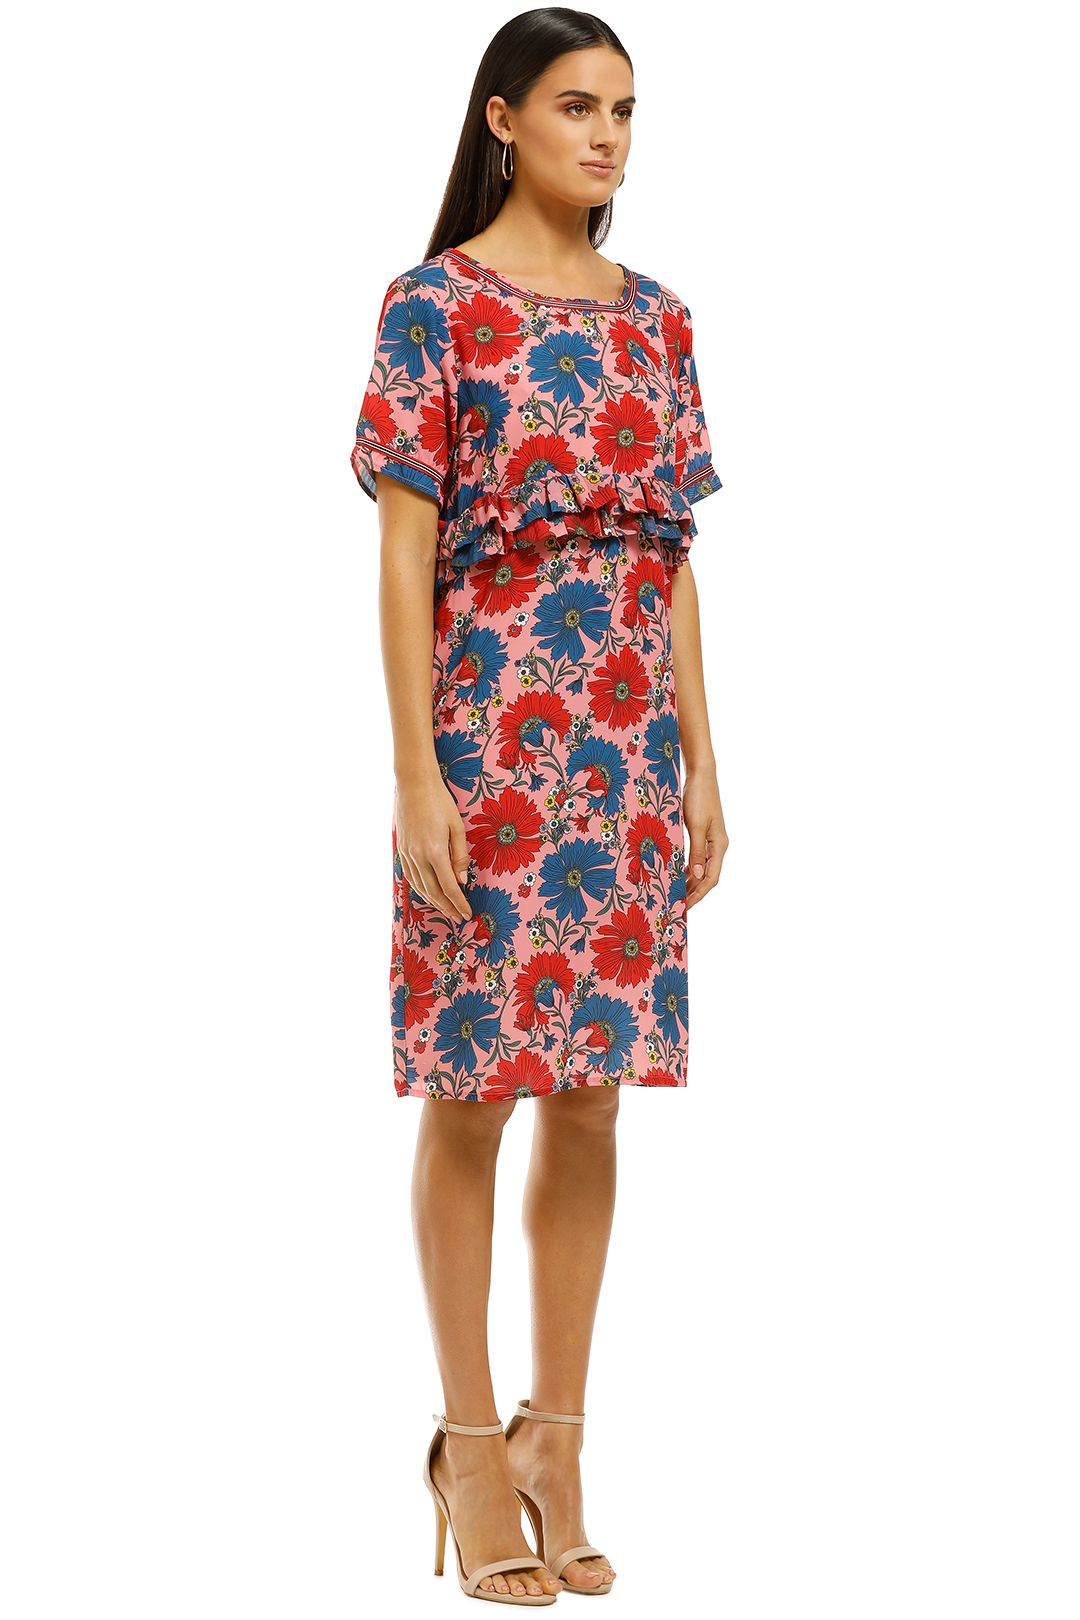 Curate-by-Trelise-Cooper-In-A-Ruffle-Dress-Multi-Side